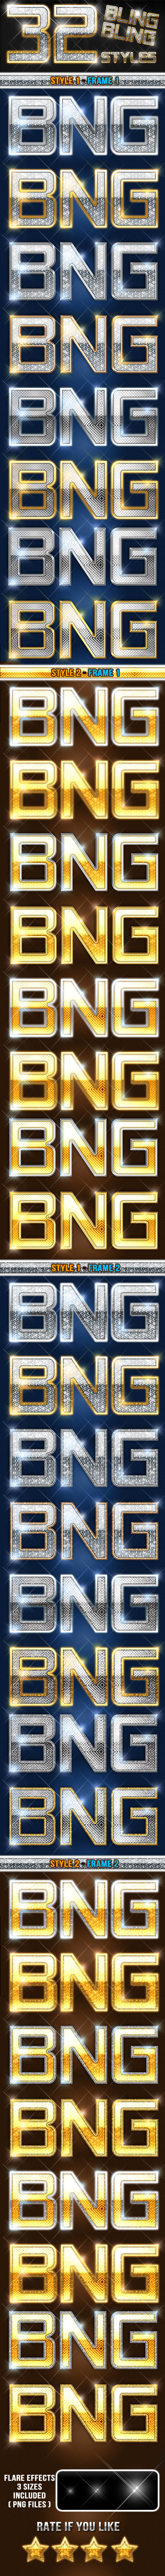 32 Bling Bling And Luxury Styles - Text Effects Styles